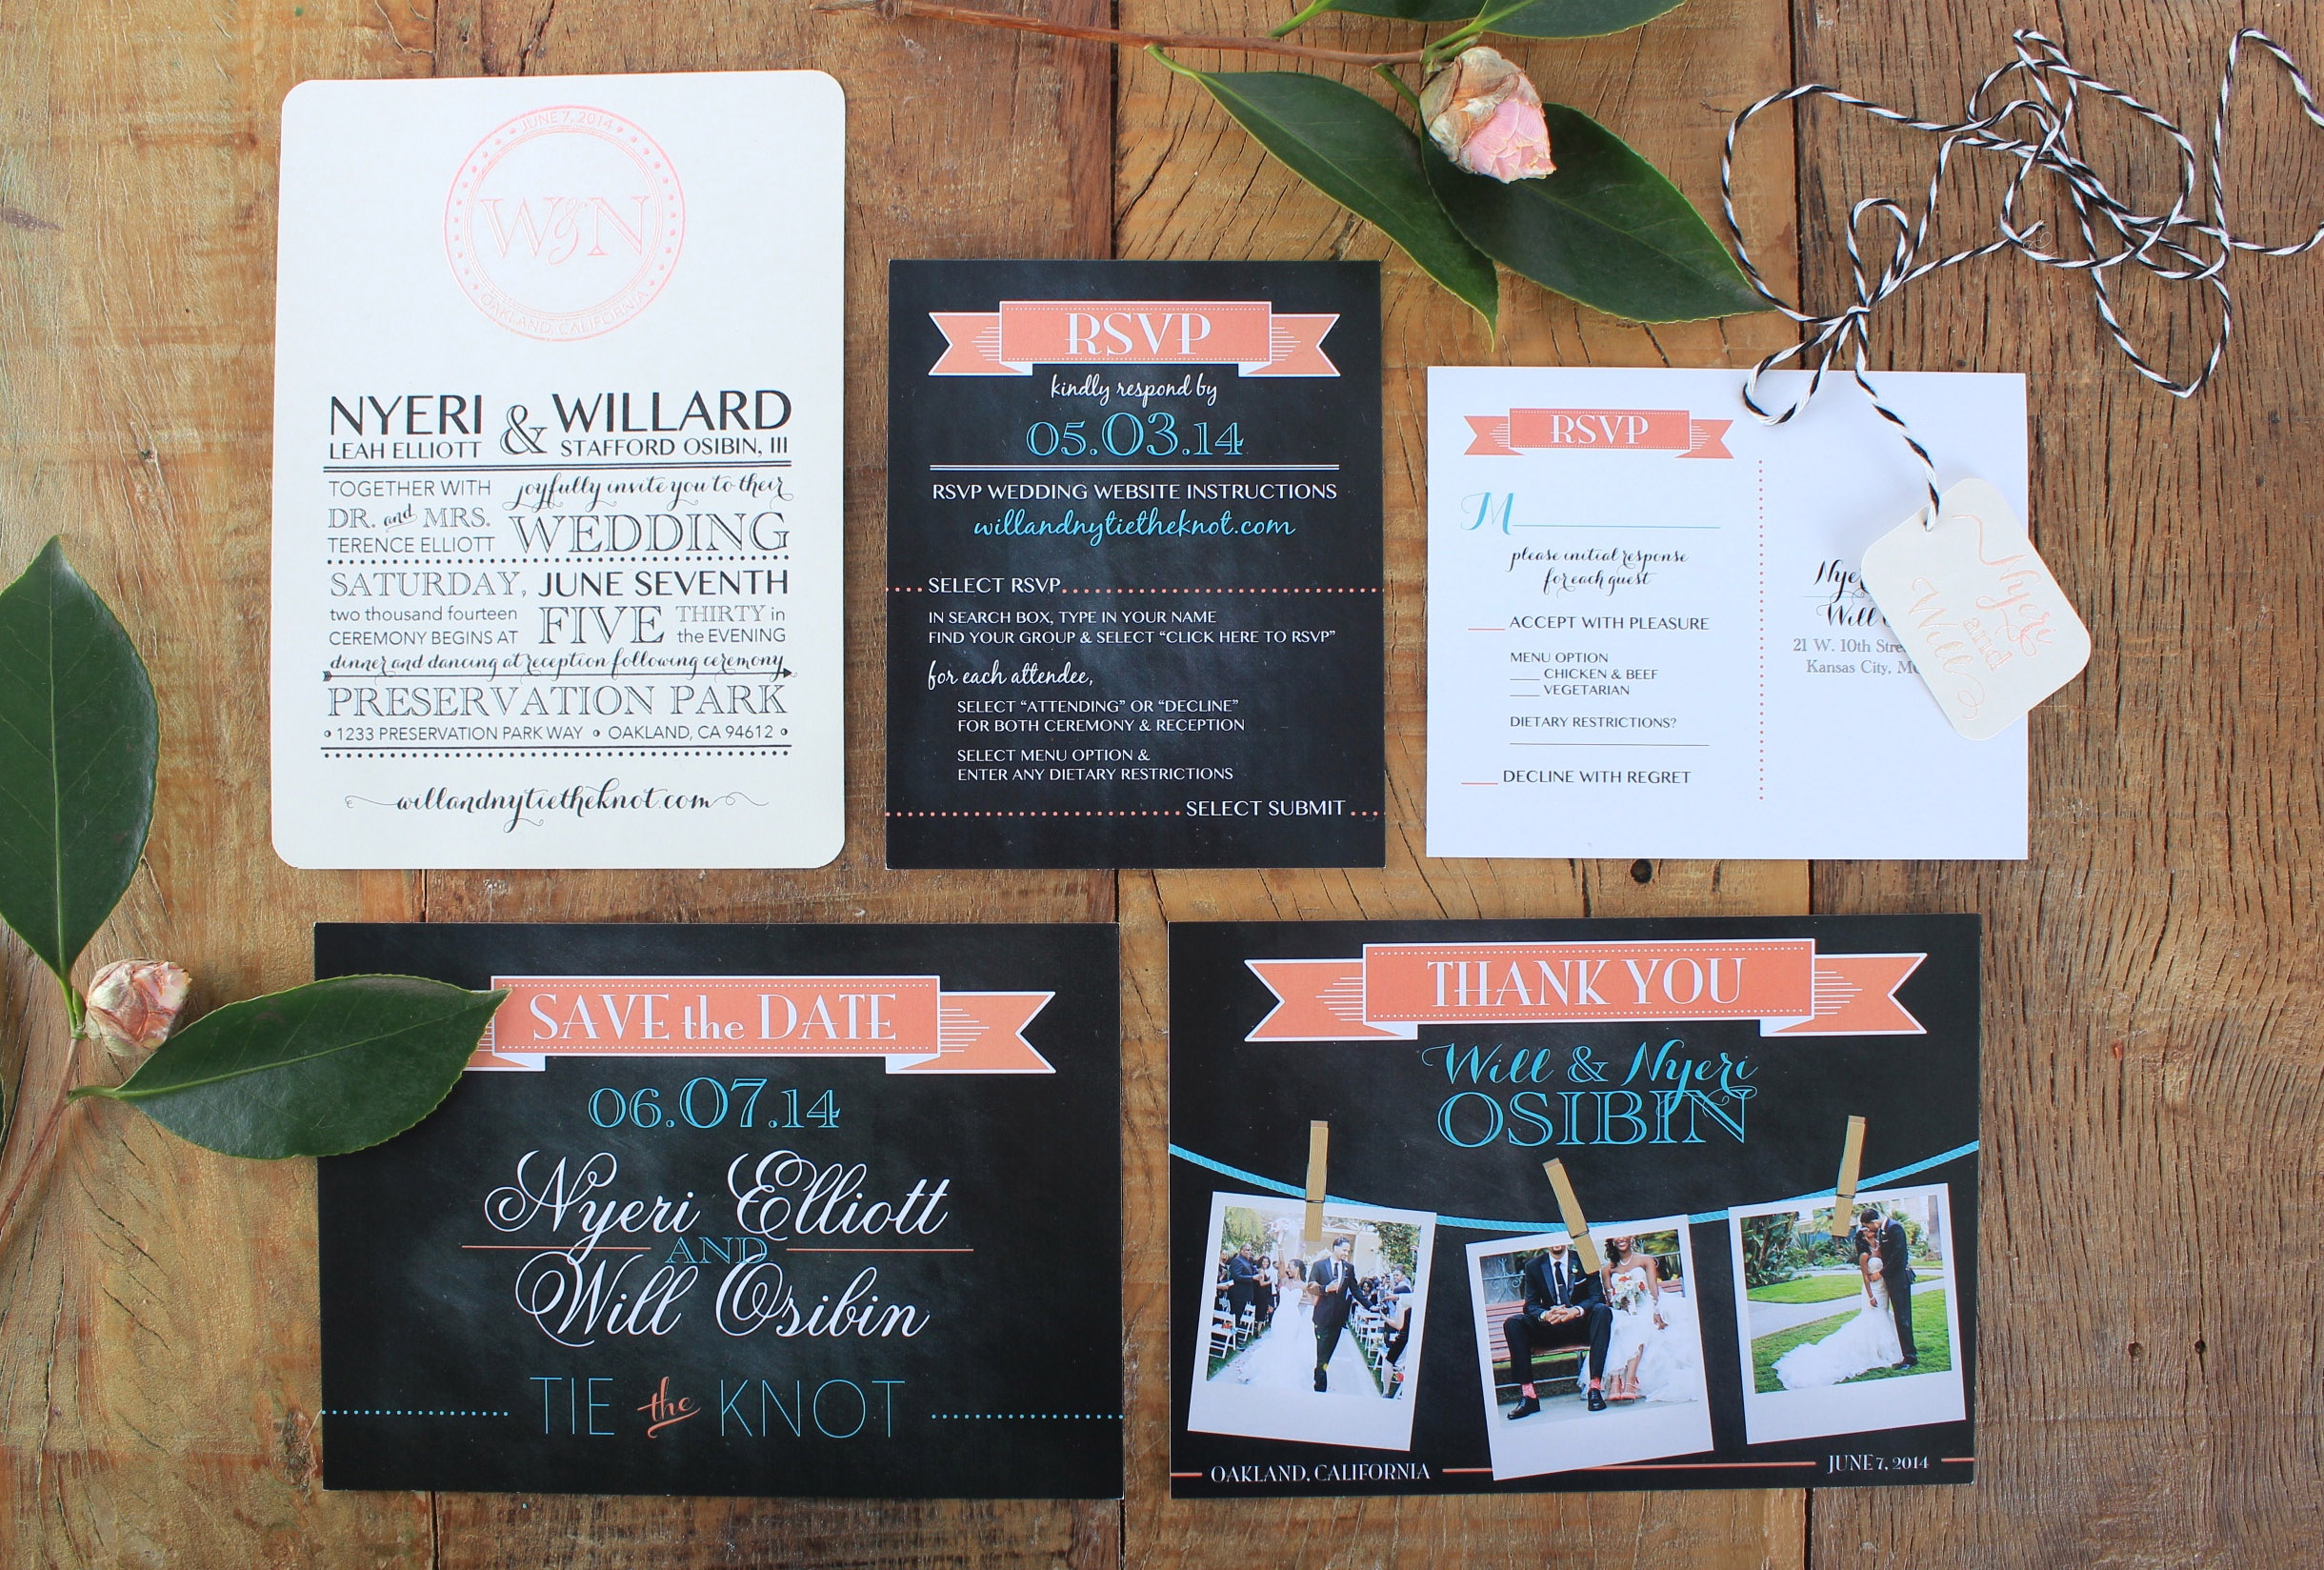 wedding invite with rsvp, save the date, and thank yous